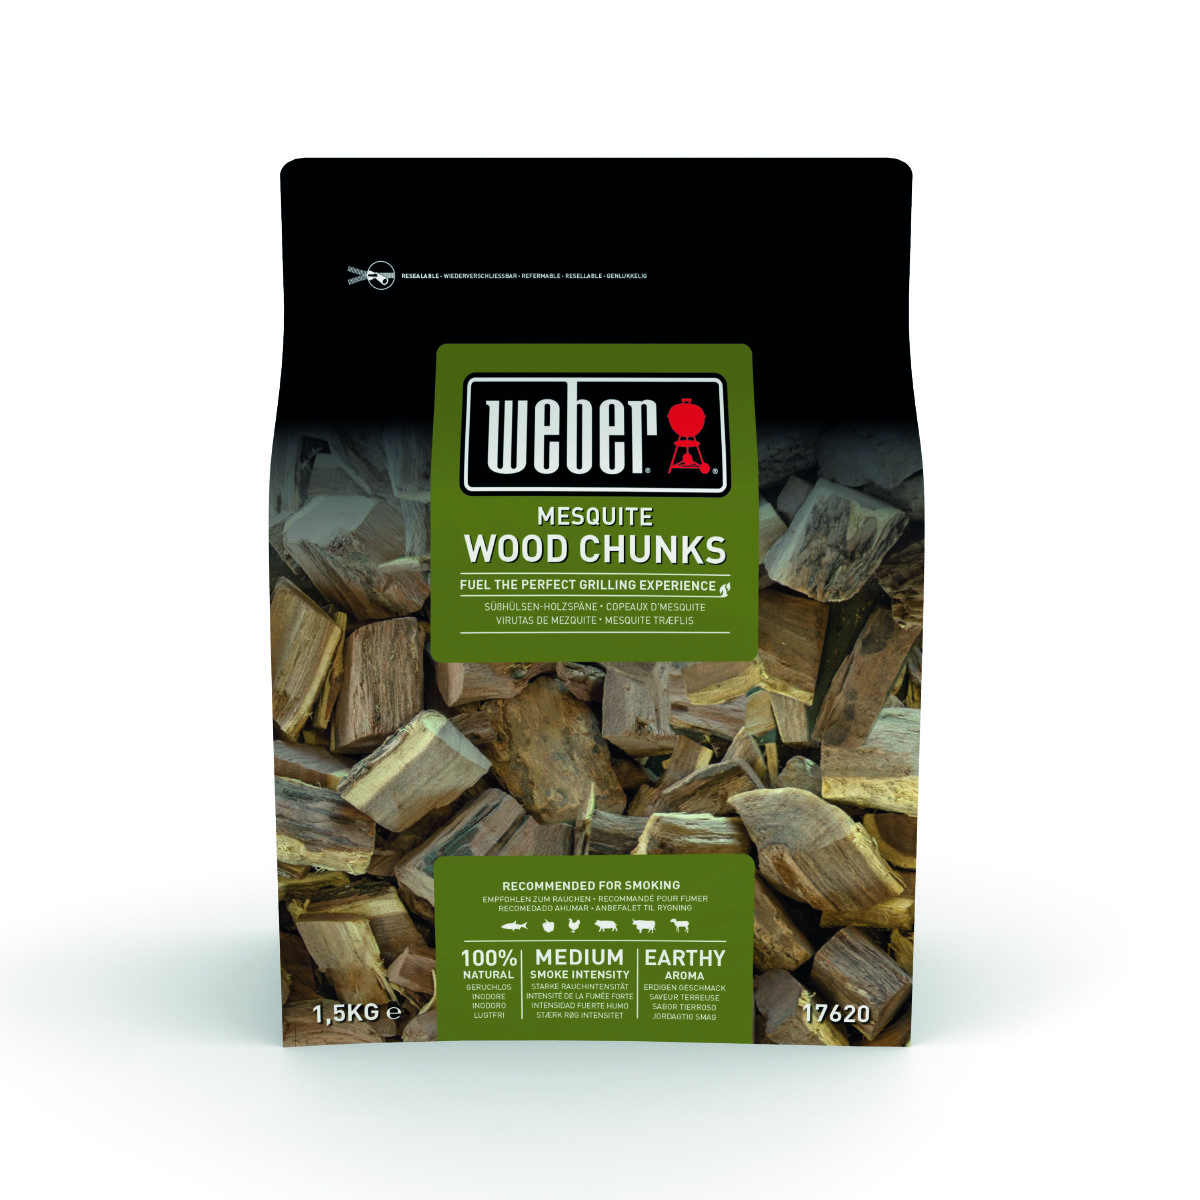 Weber Mesquite Wood Chunks